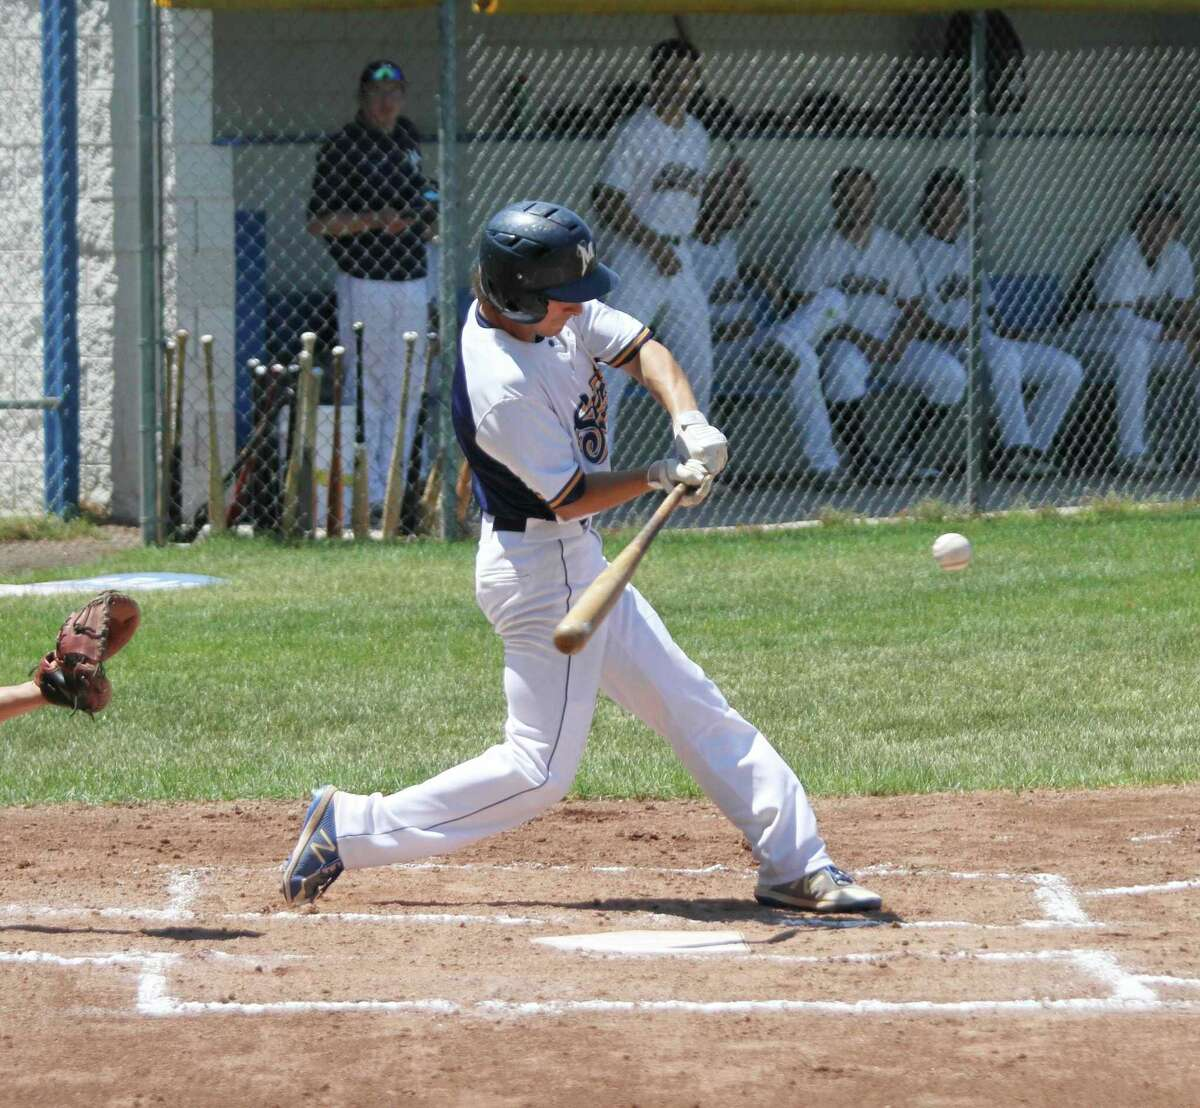 In this file photo, Manistee's Lucas Weinert looks to put the ball in playing during a game at Rietz Park in Manistee. The Saints dropped their first game since June to the Addison Braves of Illinois via a walk-off home run in extra innings Friday during the National Amateur Baseball Federation World Series tournament in Battle Creek. (File photo)